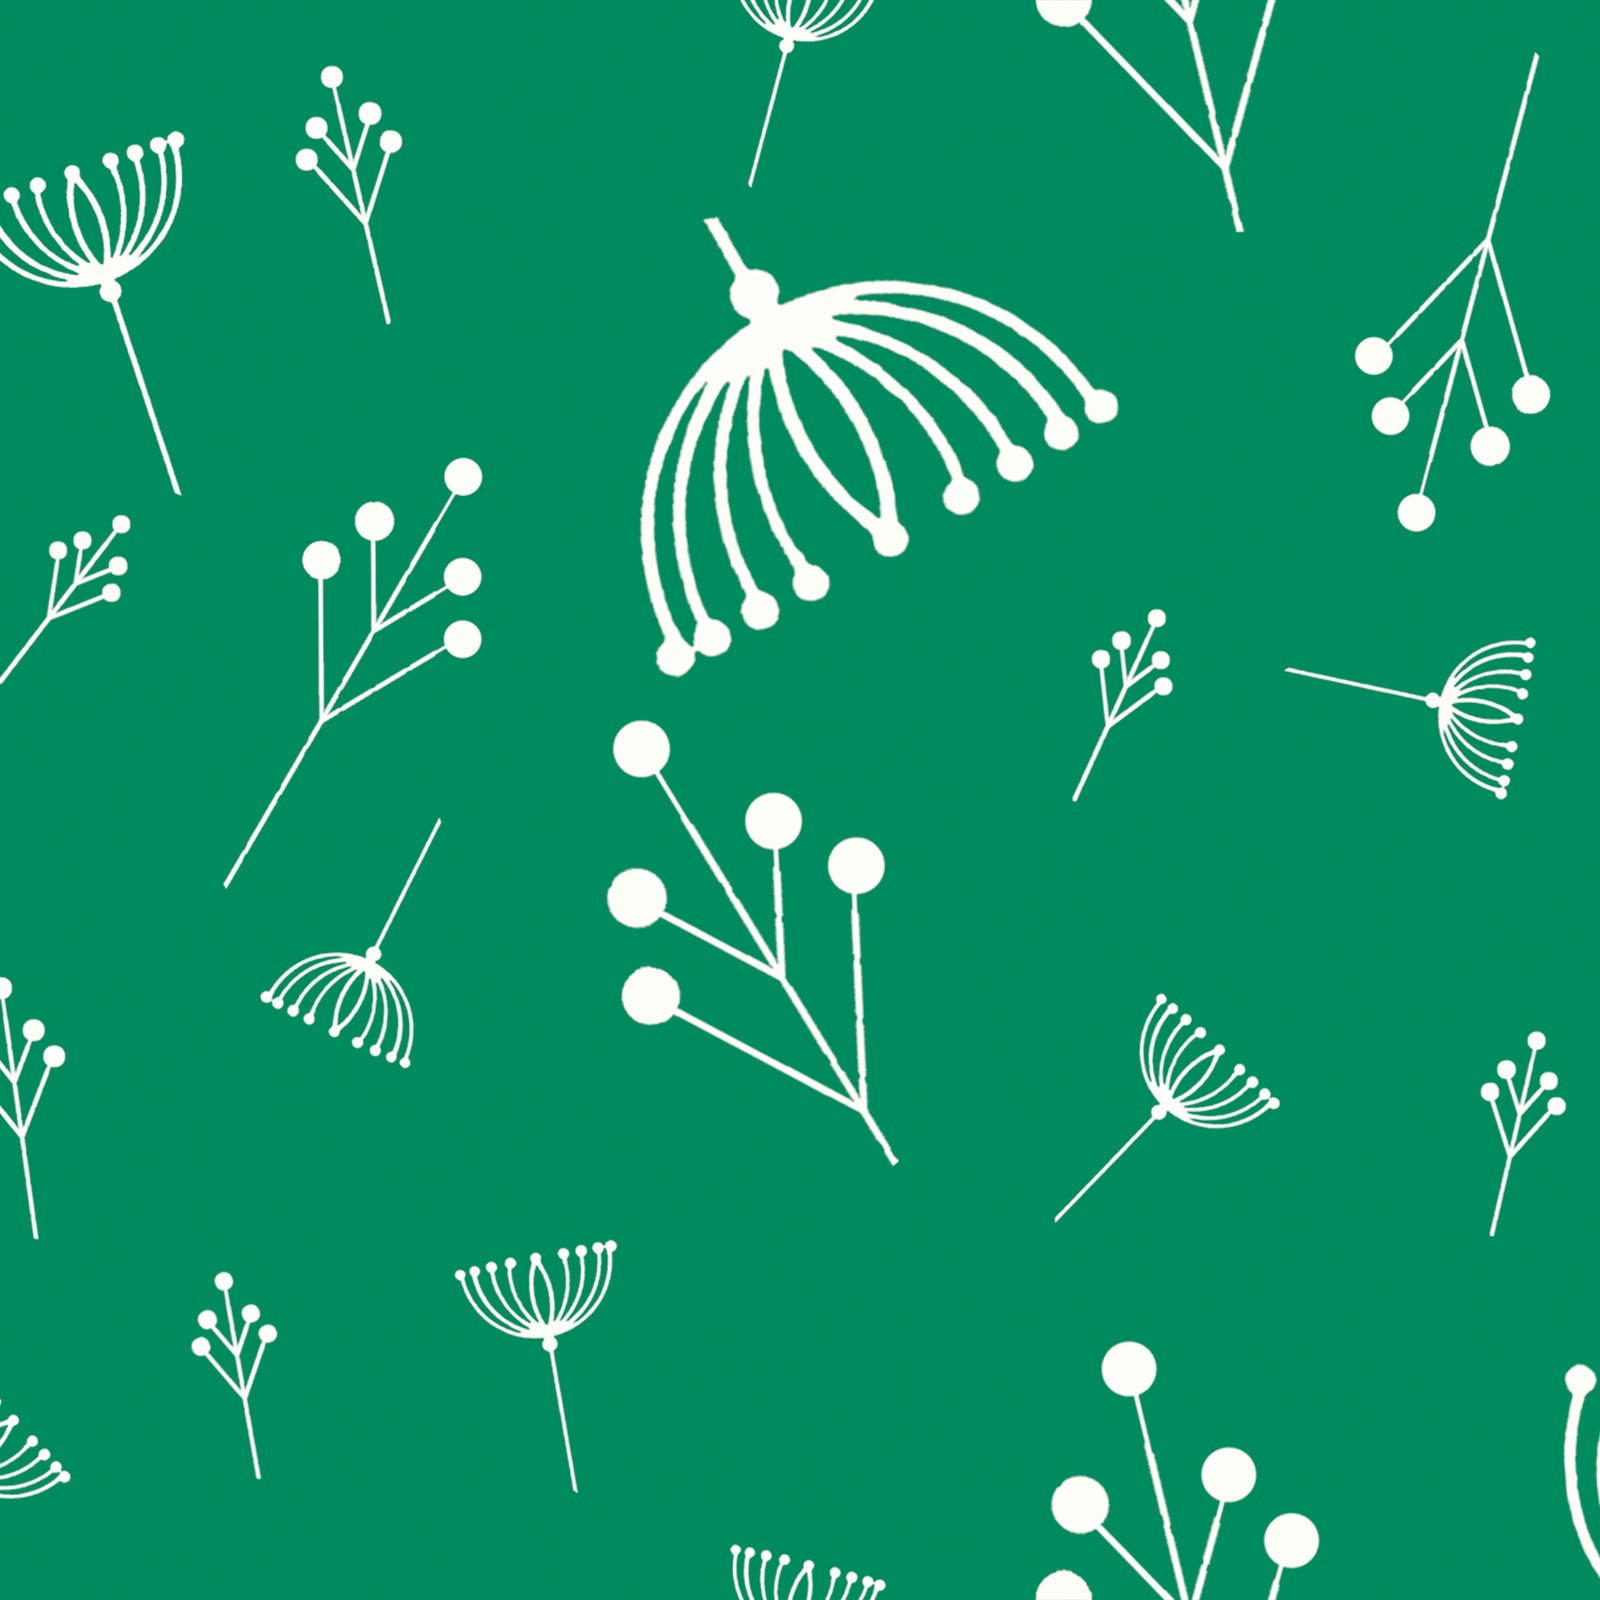 Twigs in Green (Poplin Fabric) by Charley Harper from the Best of Charley Harper collection for Birch #CH87Green